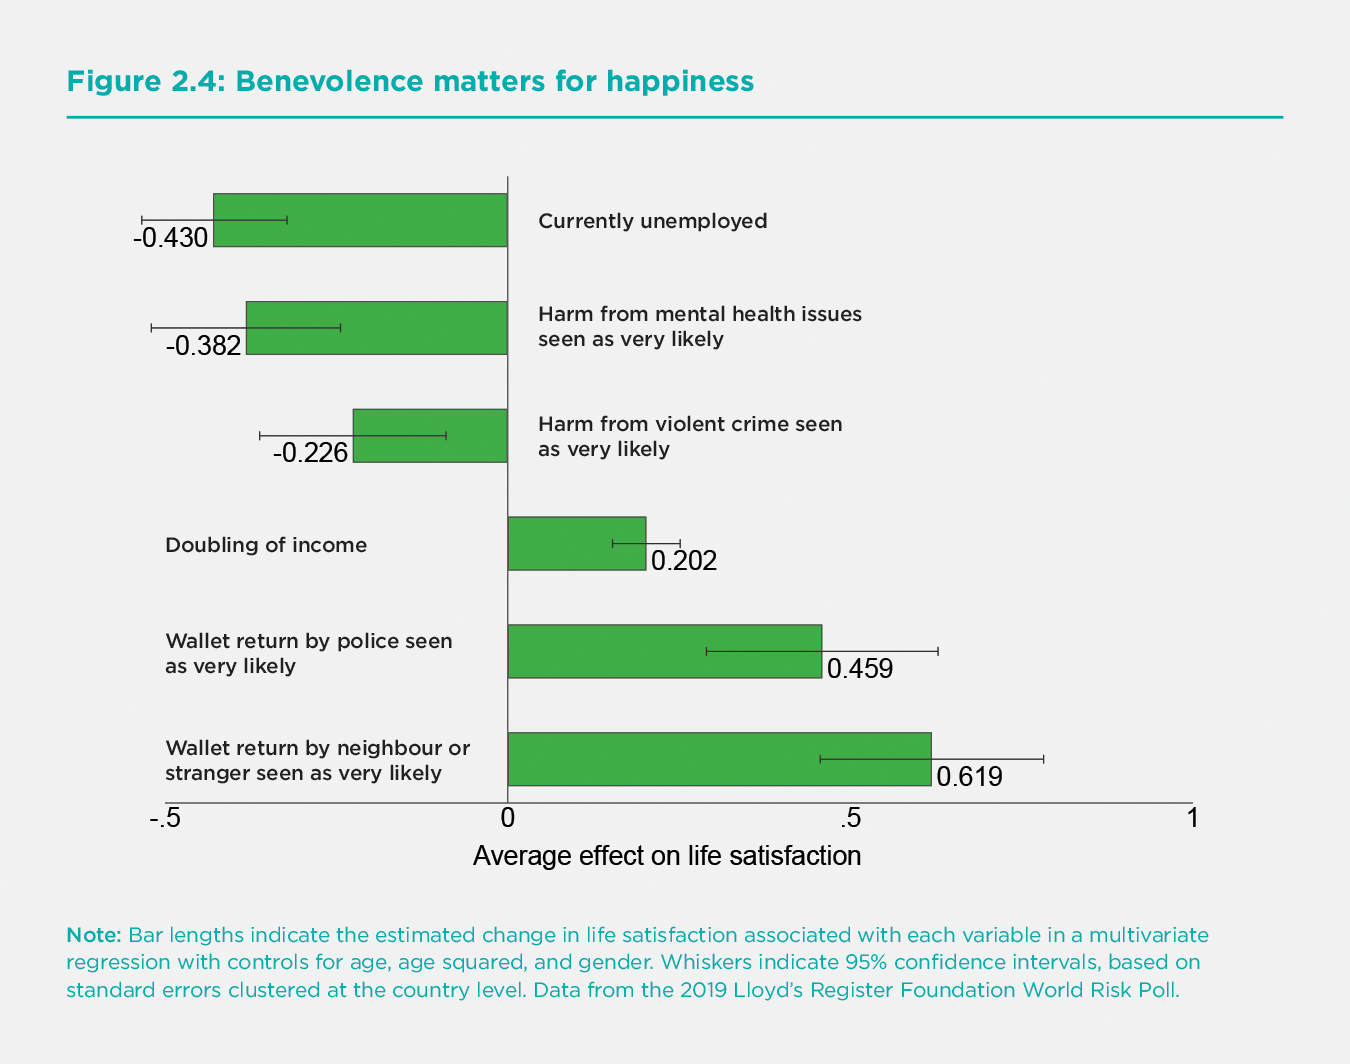 Figure 2.4. Benevolence matters for happiness